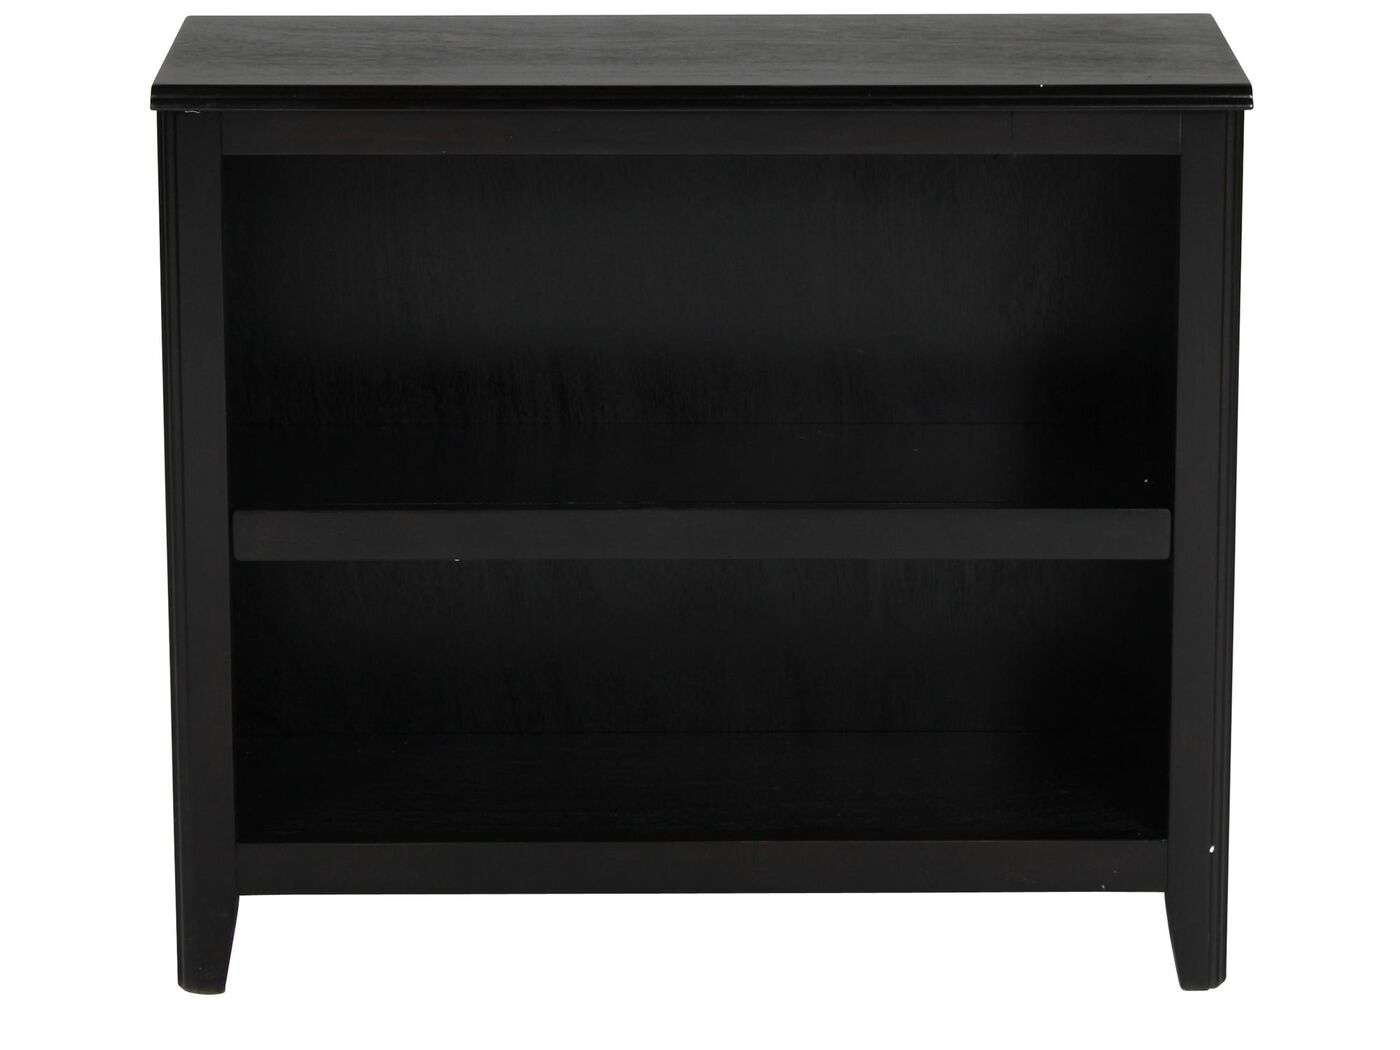 Pine Dining Room Tables Contemporary Adjustable Shelf Small Bookcase In Black